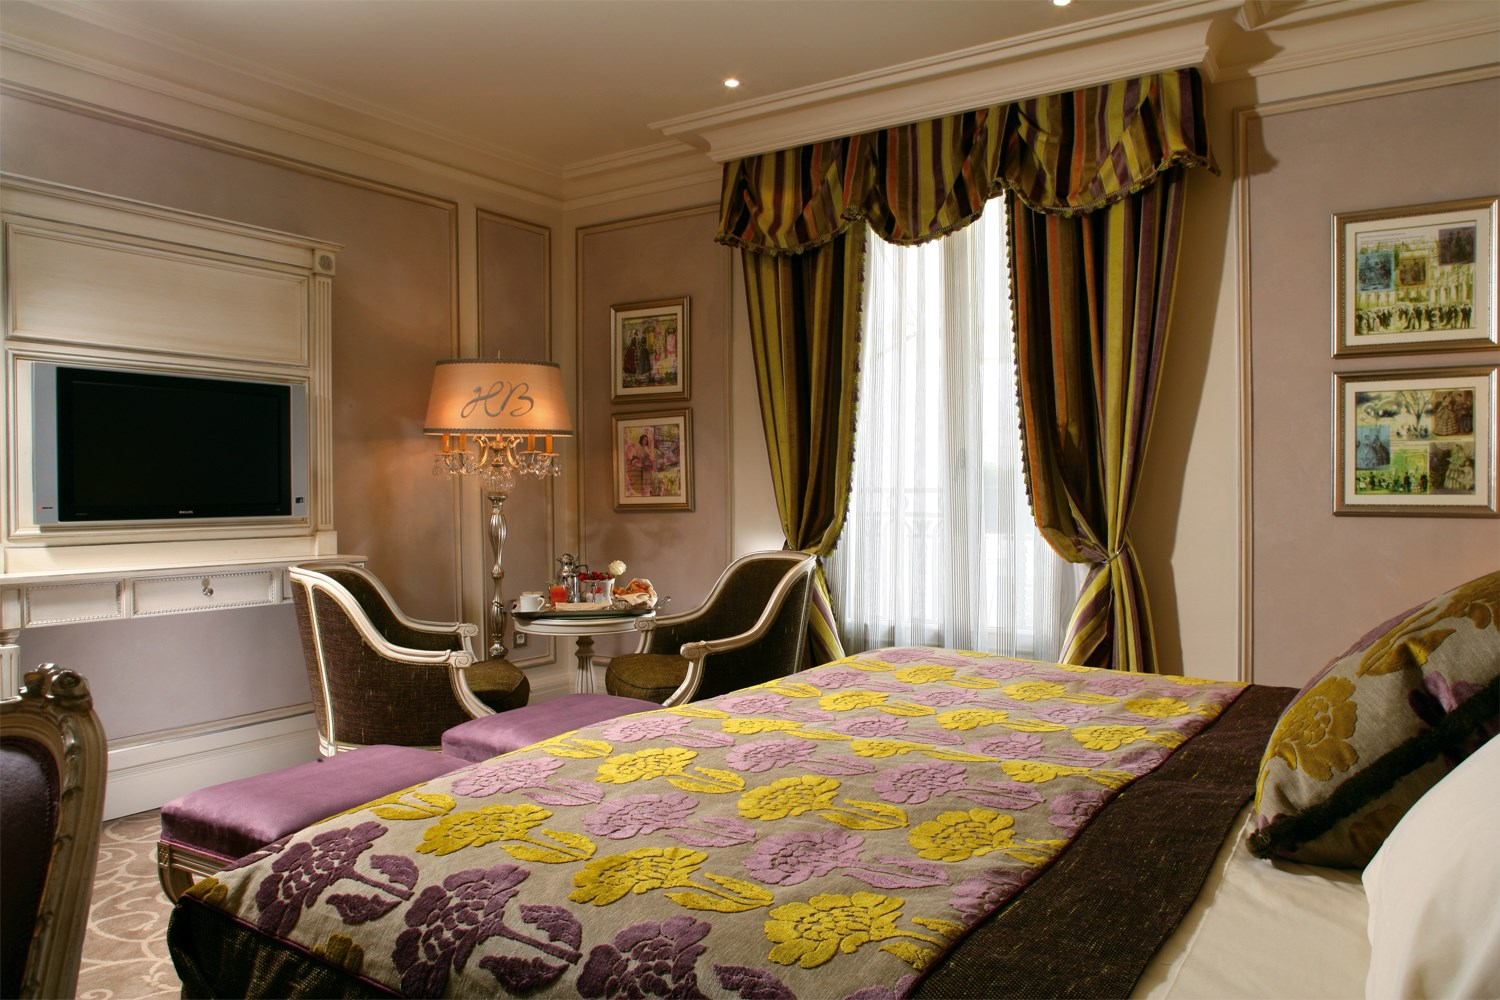 Deluxe Room Hotel Balzac Paris Champs Elysees